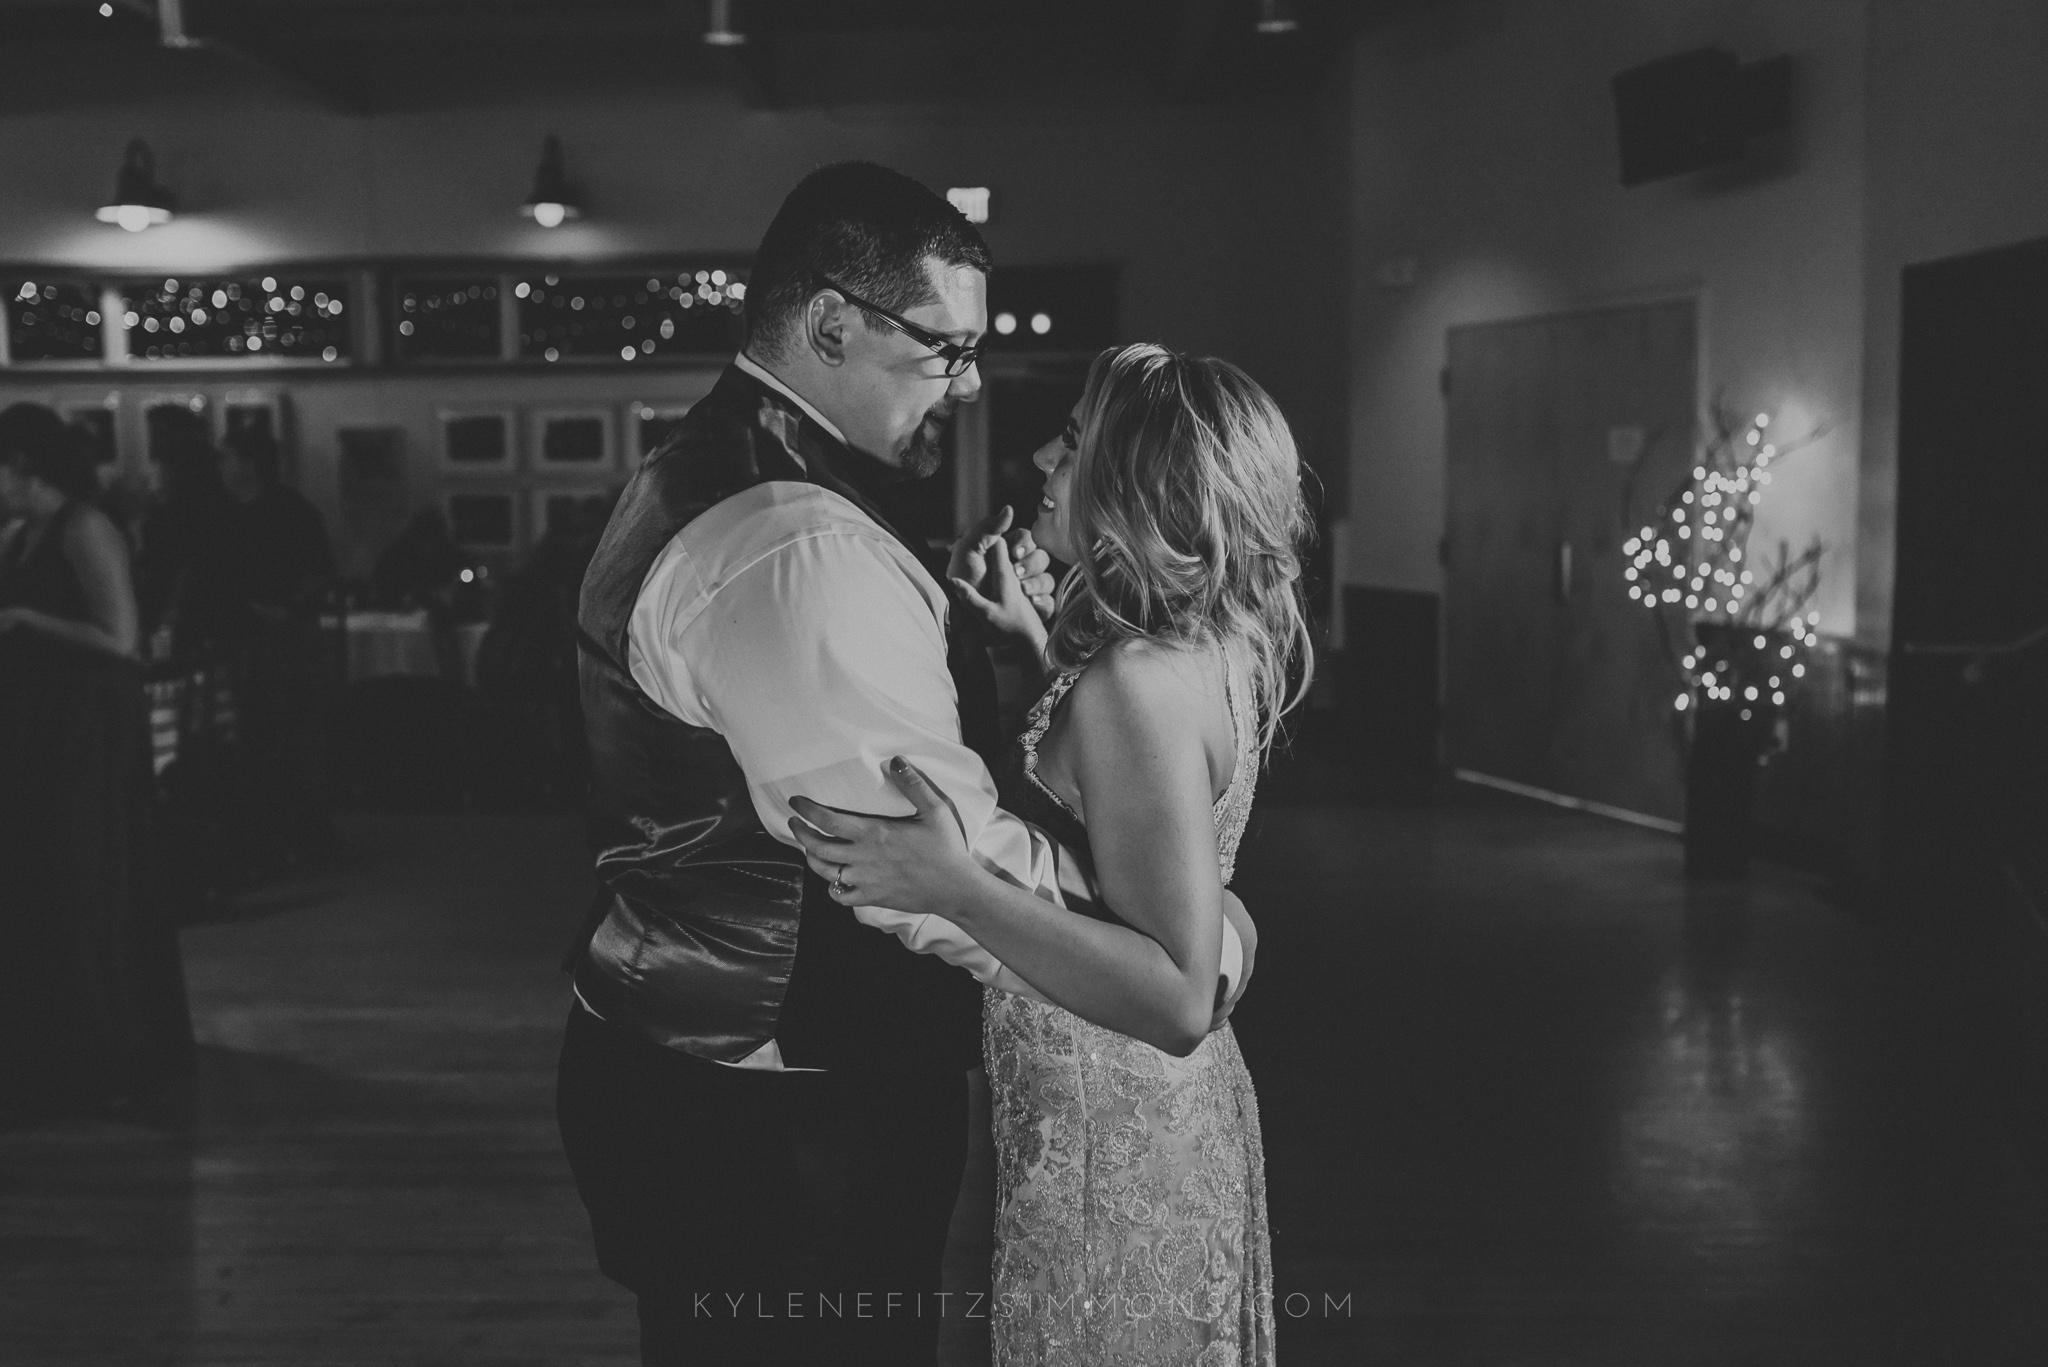 giannonatti-minnesota-winter-wedding-132.jpg